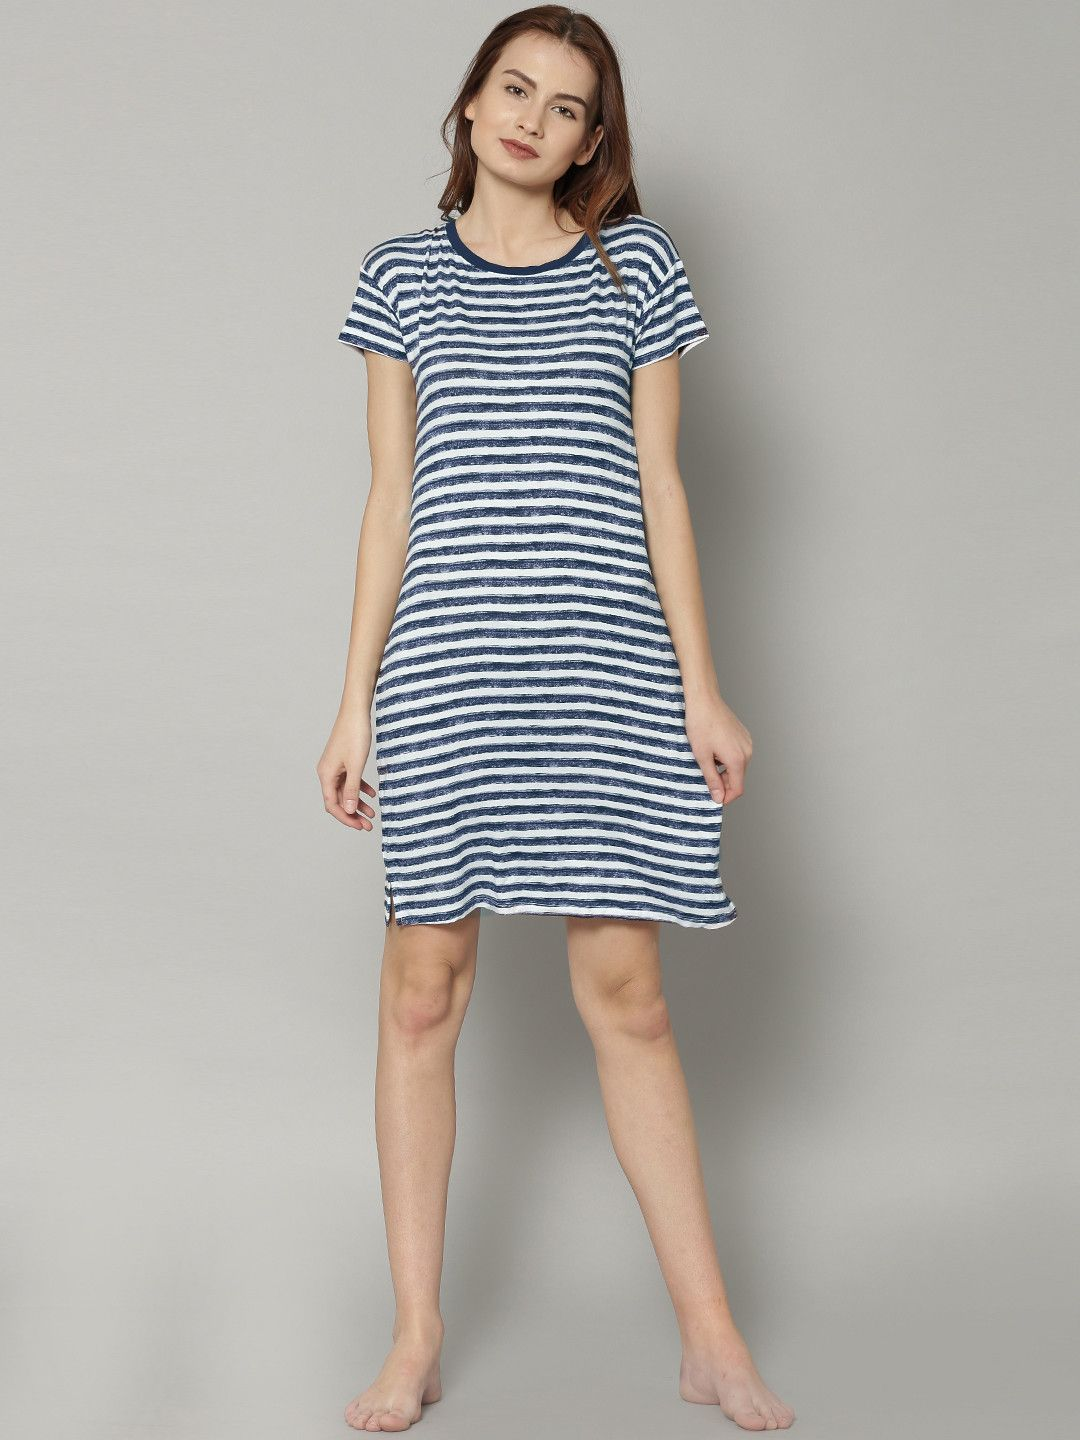 bed3b1352e12 Marks   Spencer Women White   Navy Striped T Shirt Dress  striped  printed   white  blue